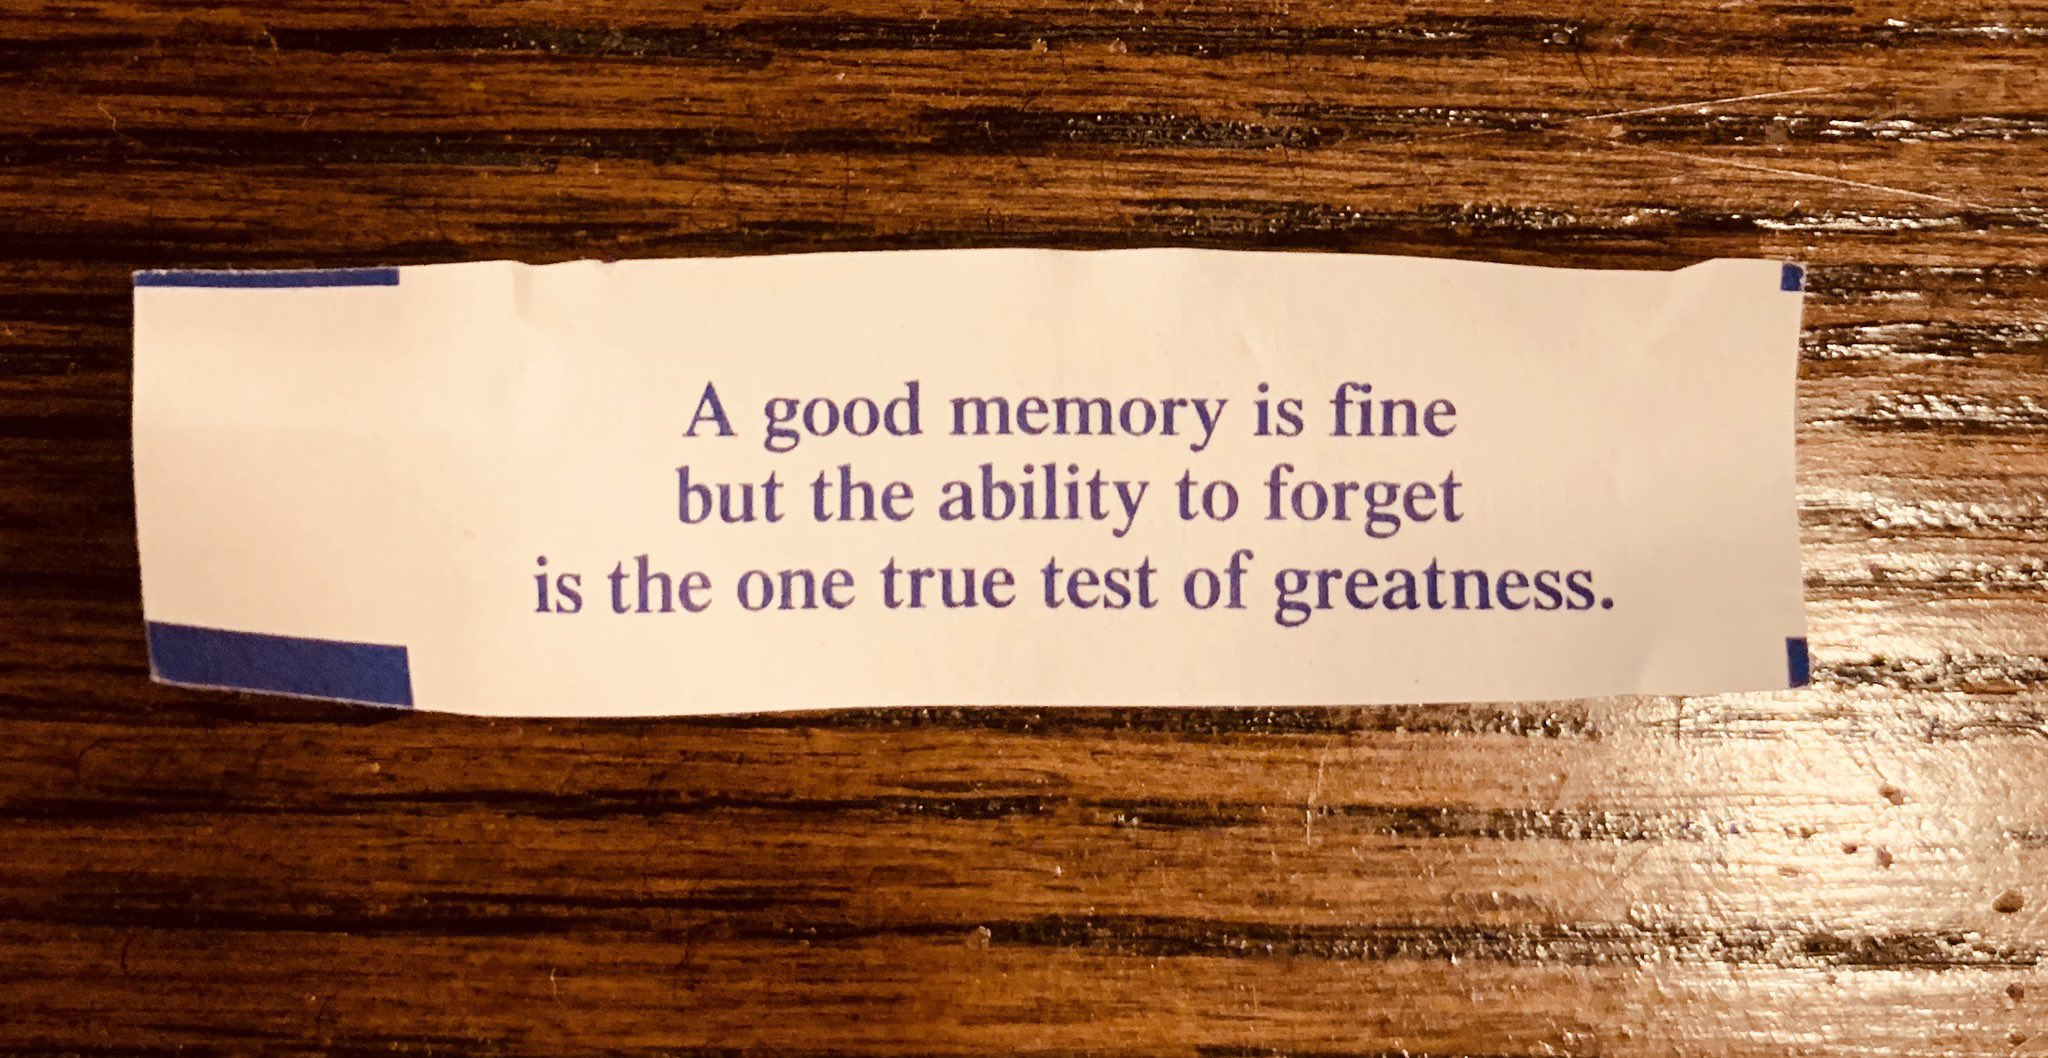 A little wisdom from a fortune cookie. https://t.co/n9v8Wi8wDX